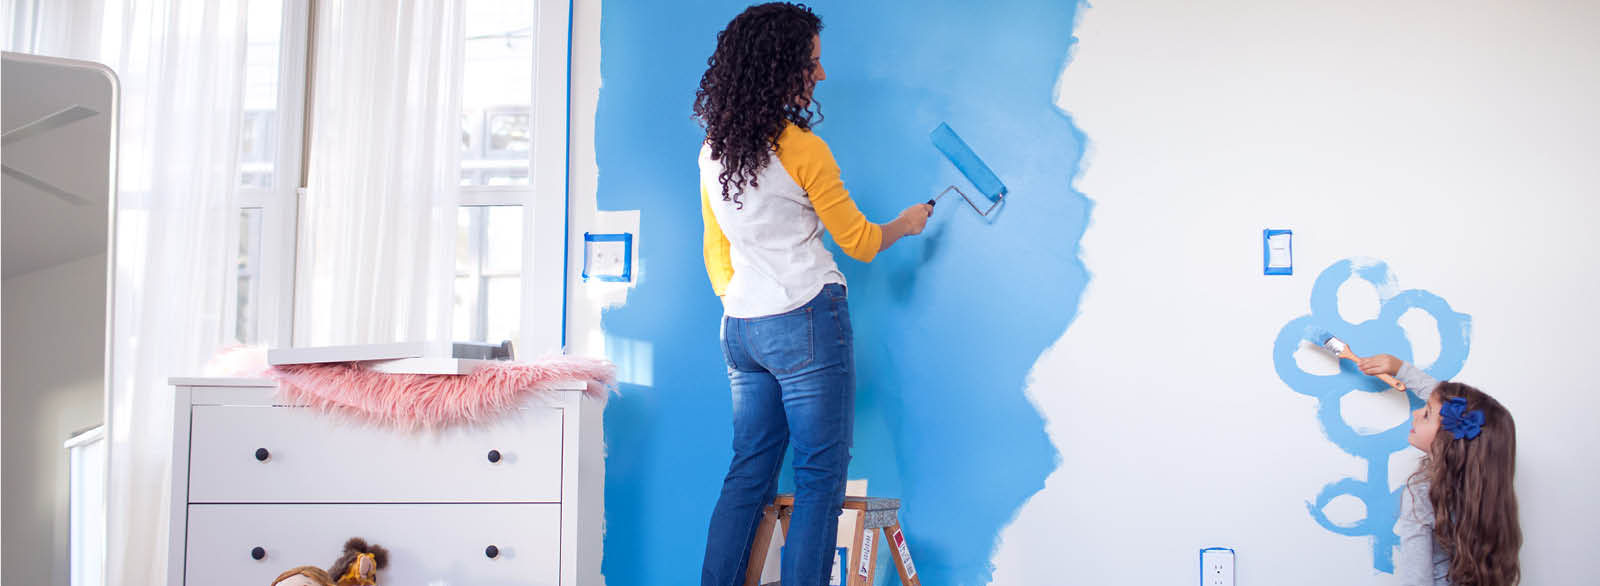 Mother and daughter painting bedroom